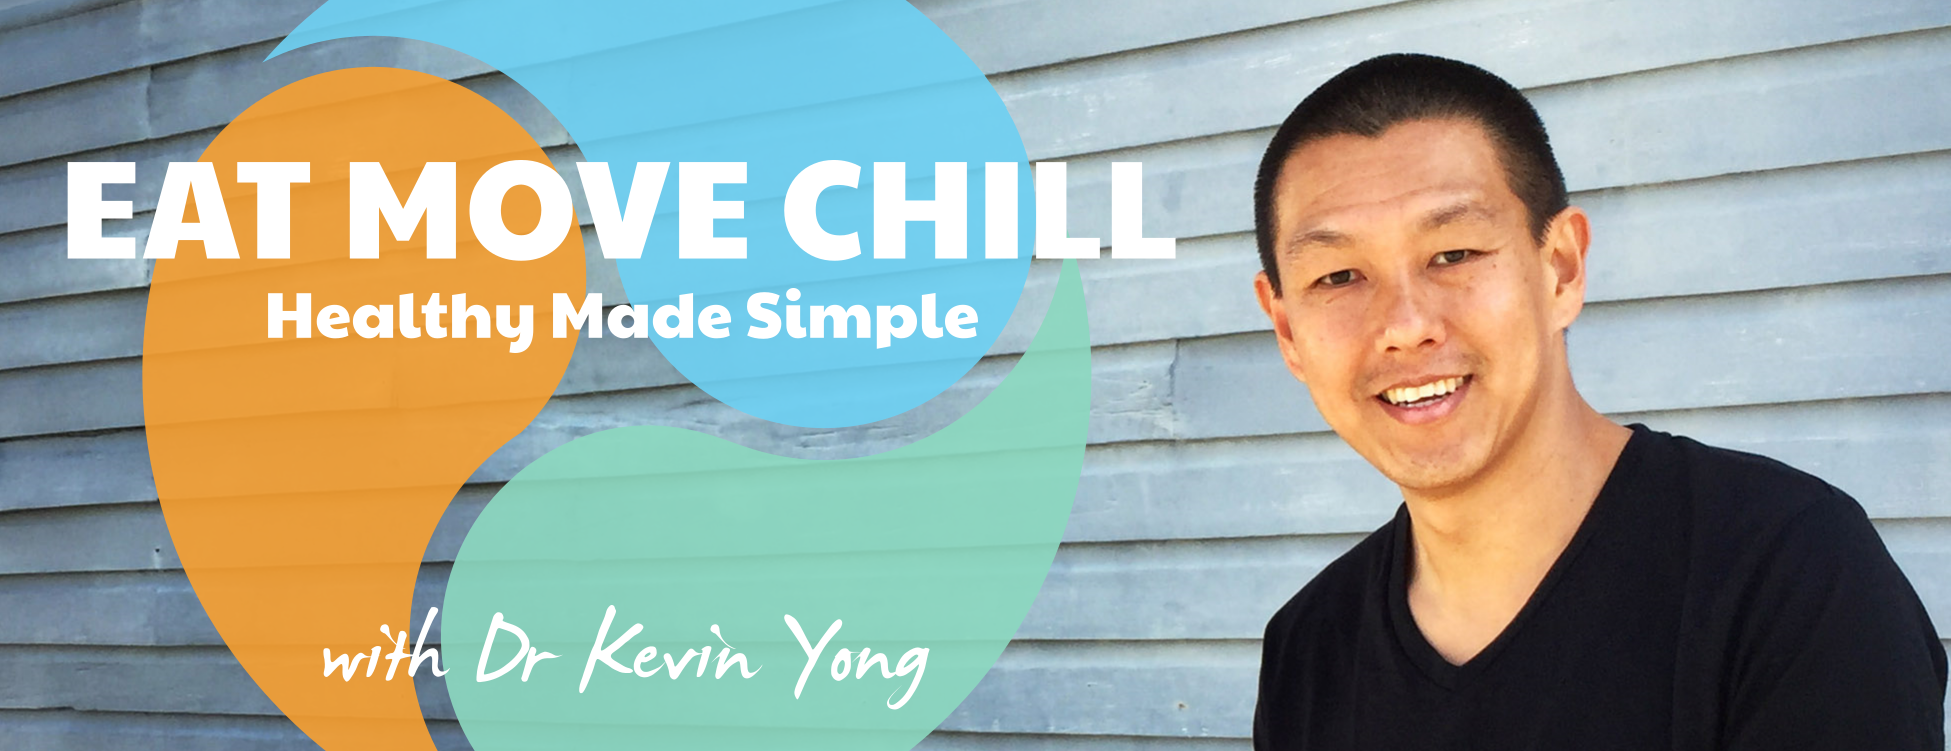 EAT MOVE CHILL | Simple Healthy Living Advice | with Dr Kevin Yong